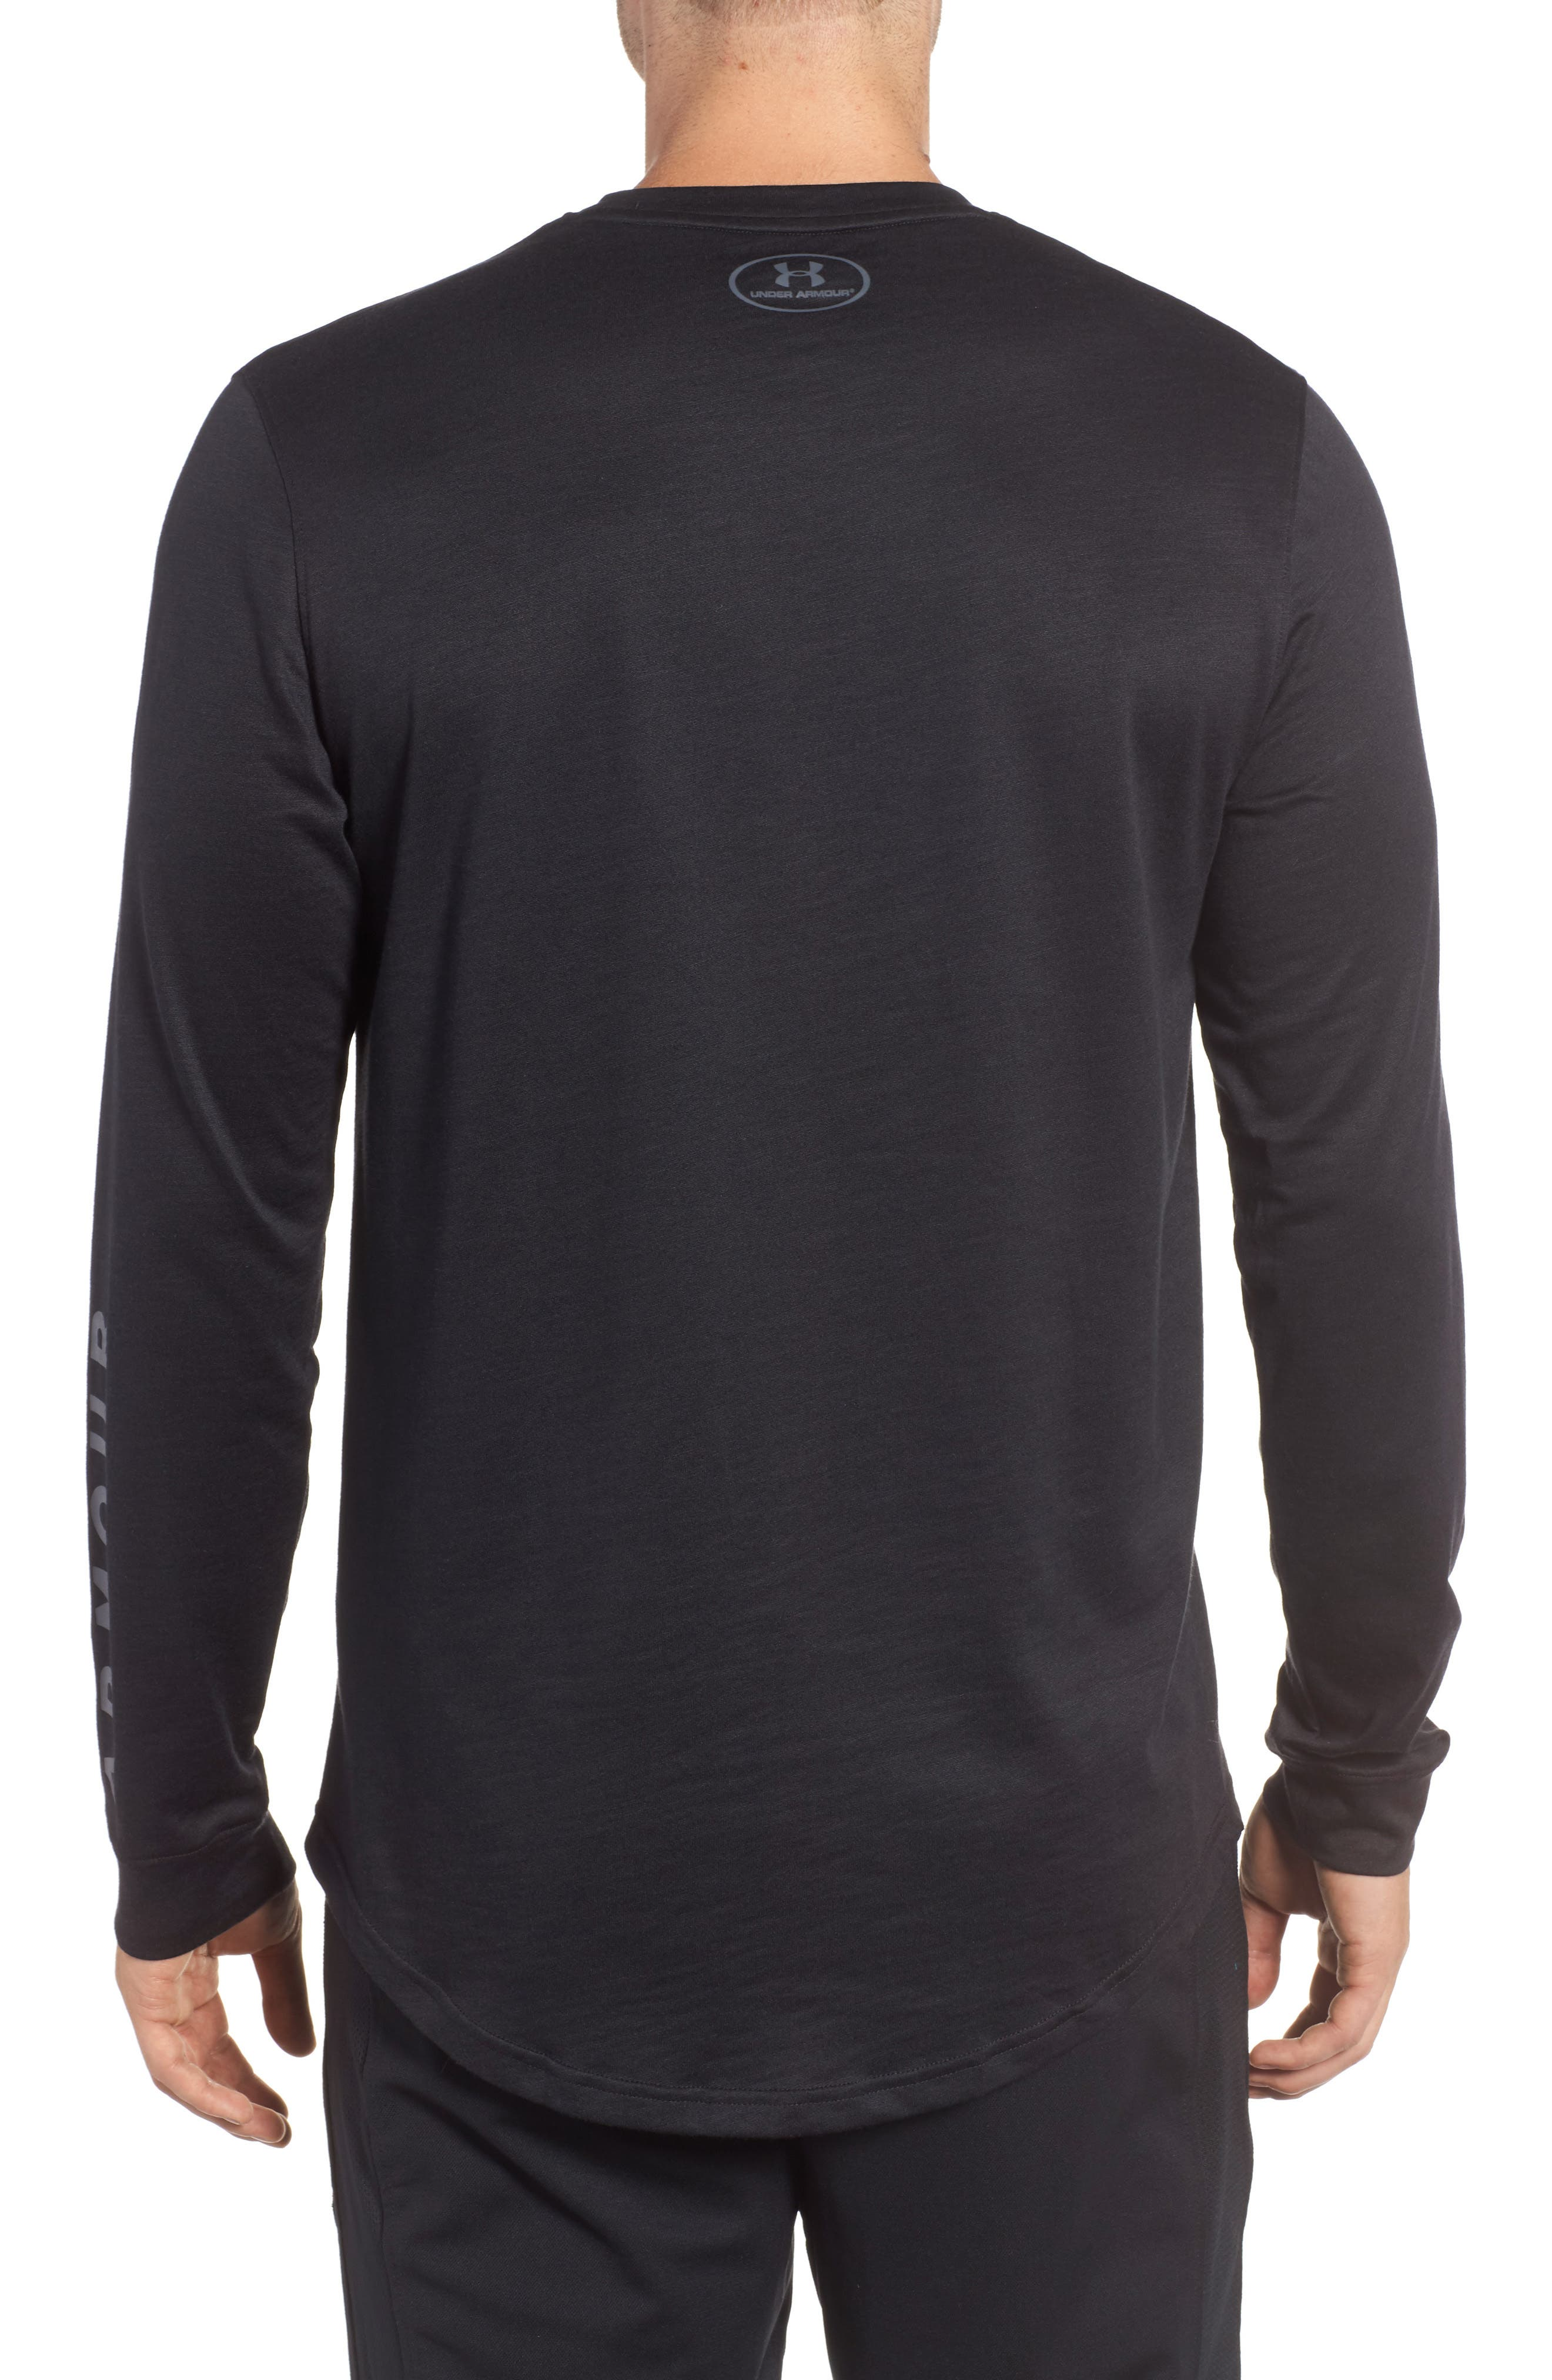 Alternate Image 2  - Under Armour Sportstyle Long Sleeve Graphic T-Shirt